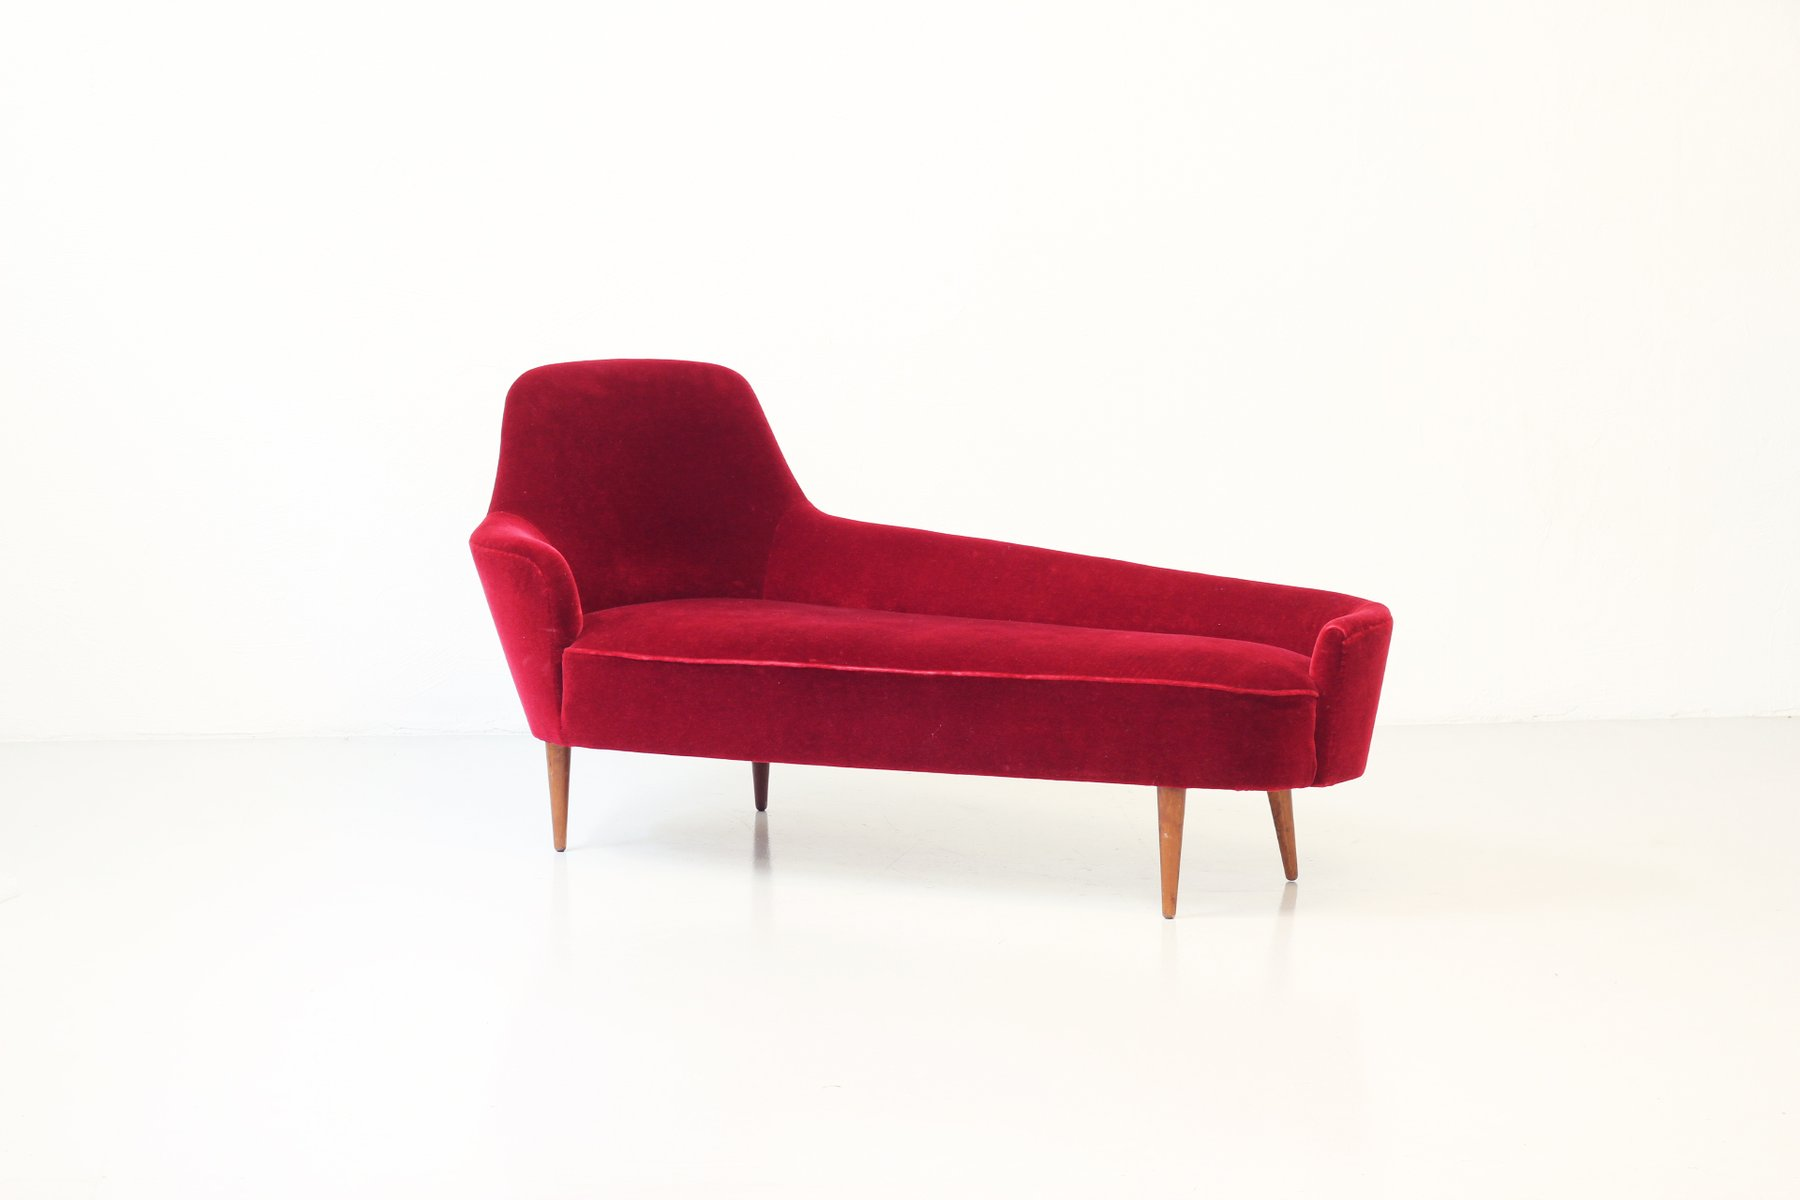 Singoalla chaise lounge by gillis lundgren for ikea 1961 for Chaise design ikea